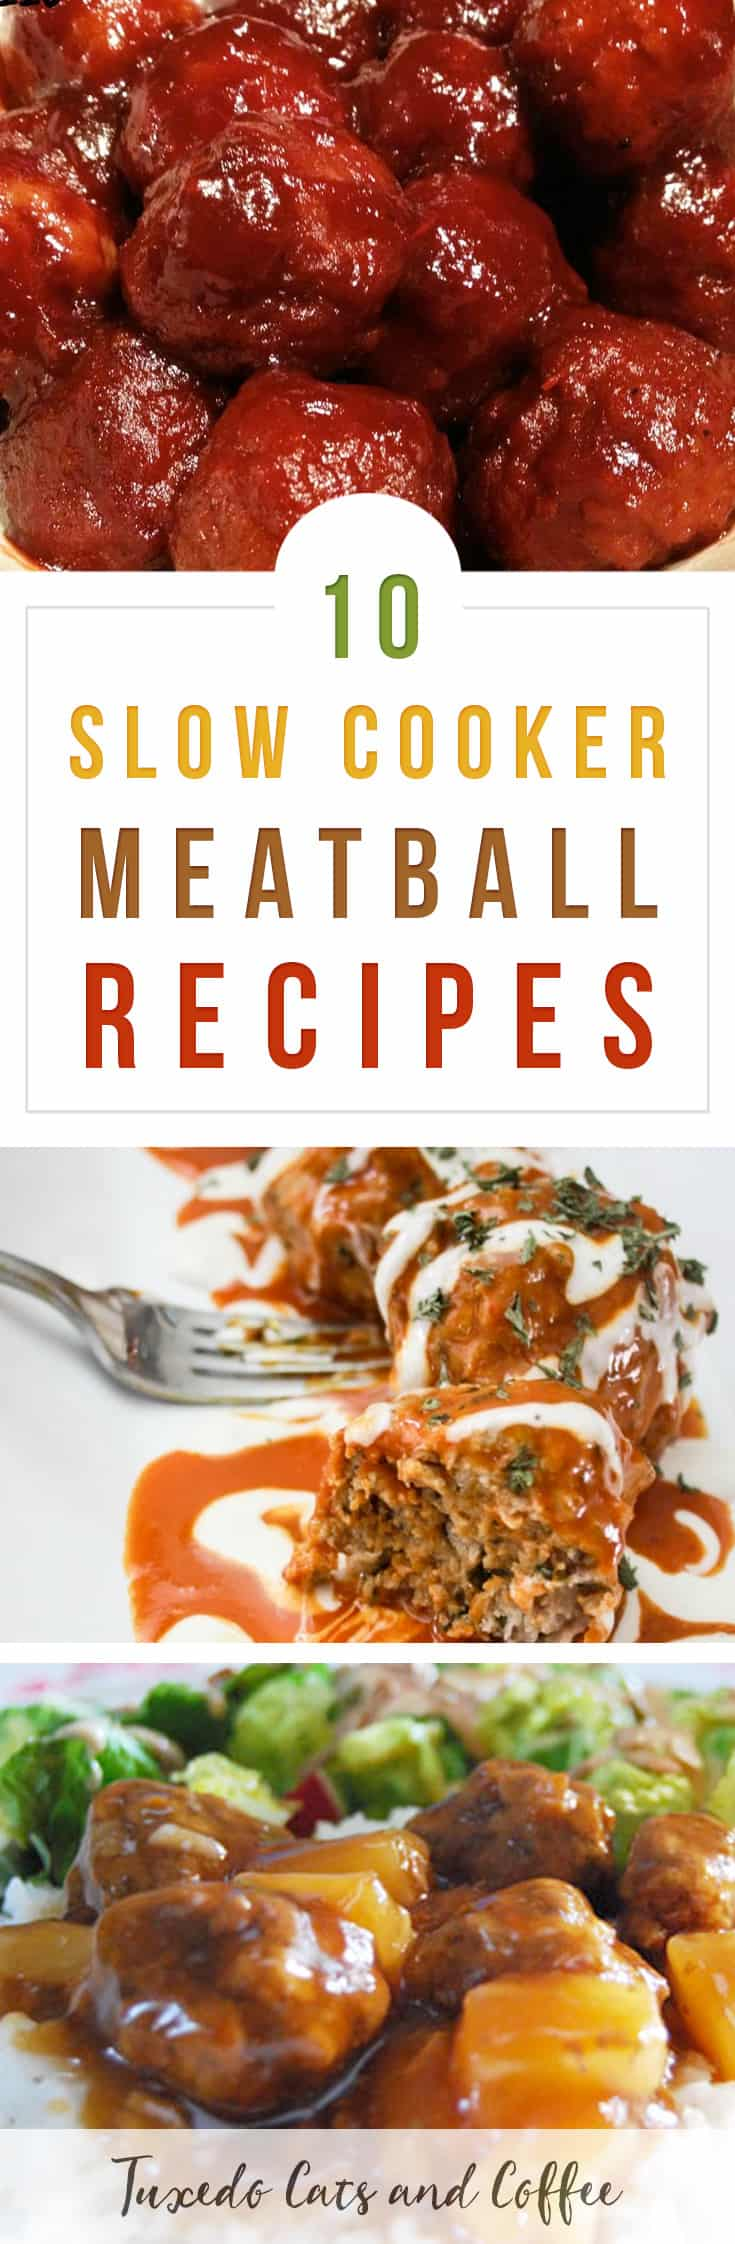 Crock pot meatballs are a quick and easy party food or regular weeknight entree that are quick to prepare and don't require a ton of different ingredients or hands-on time if you use prepared meatballs and create your own sauce. Here are 10 slow cooker meatball recipes perfect for dinner or your next gathering or get-together.